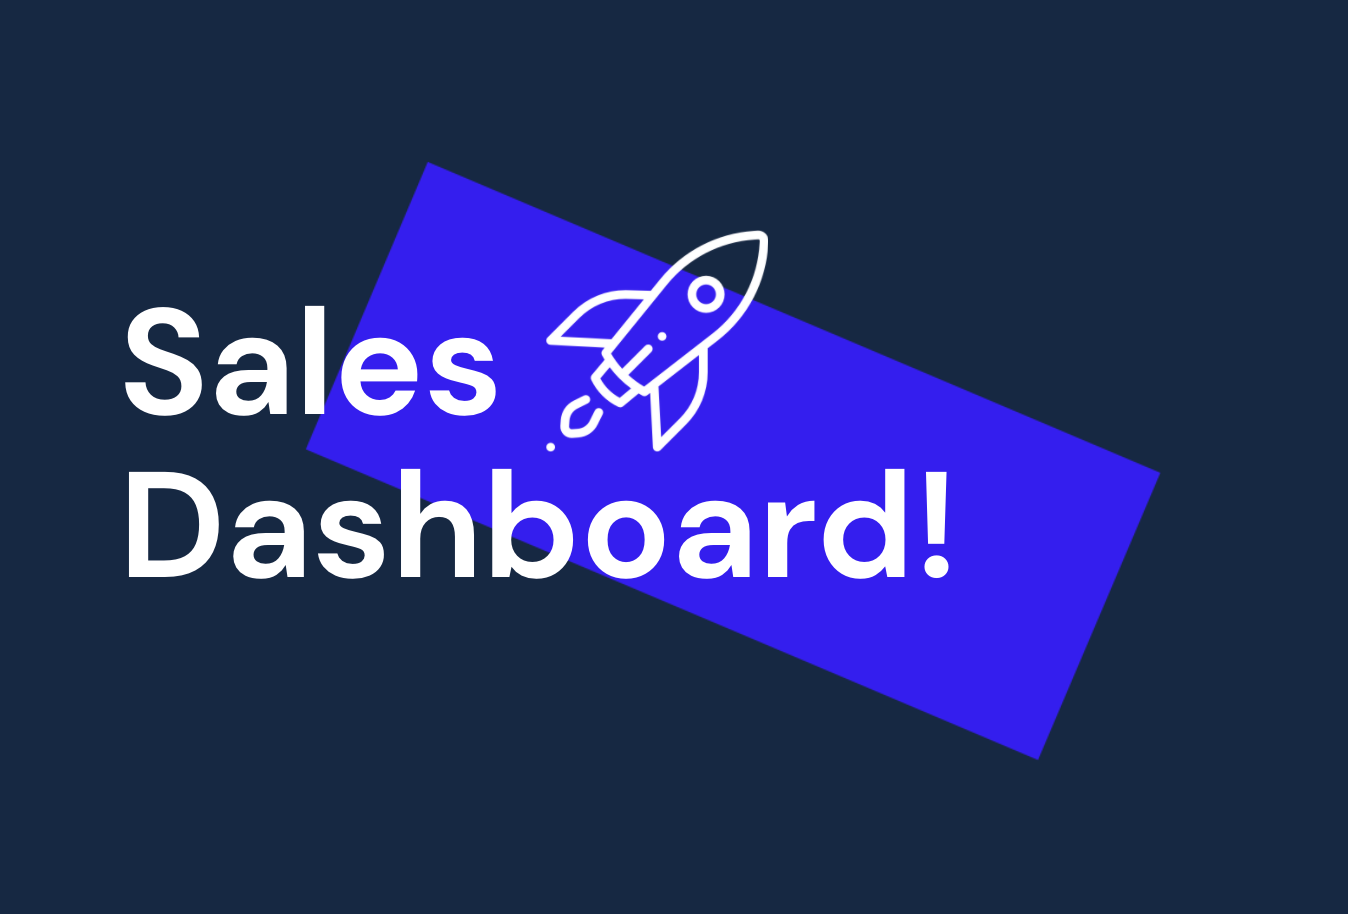 Introducing: the Sales Dashboard!